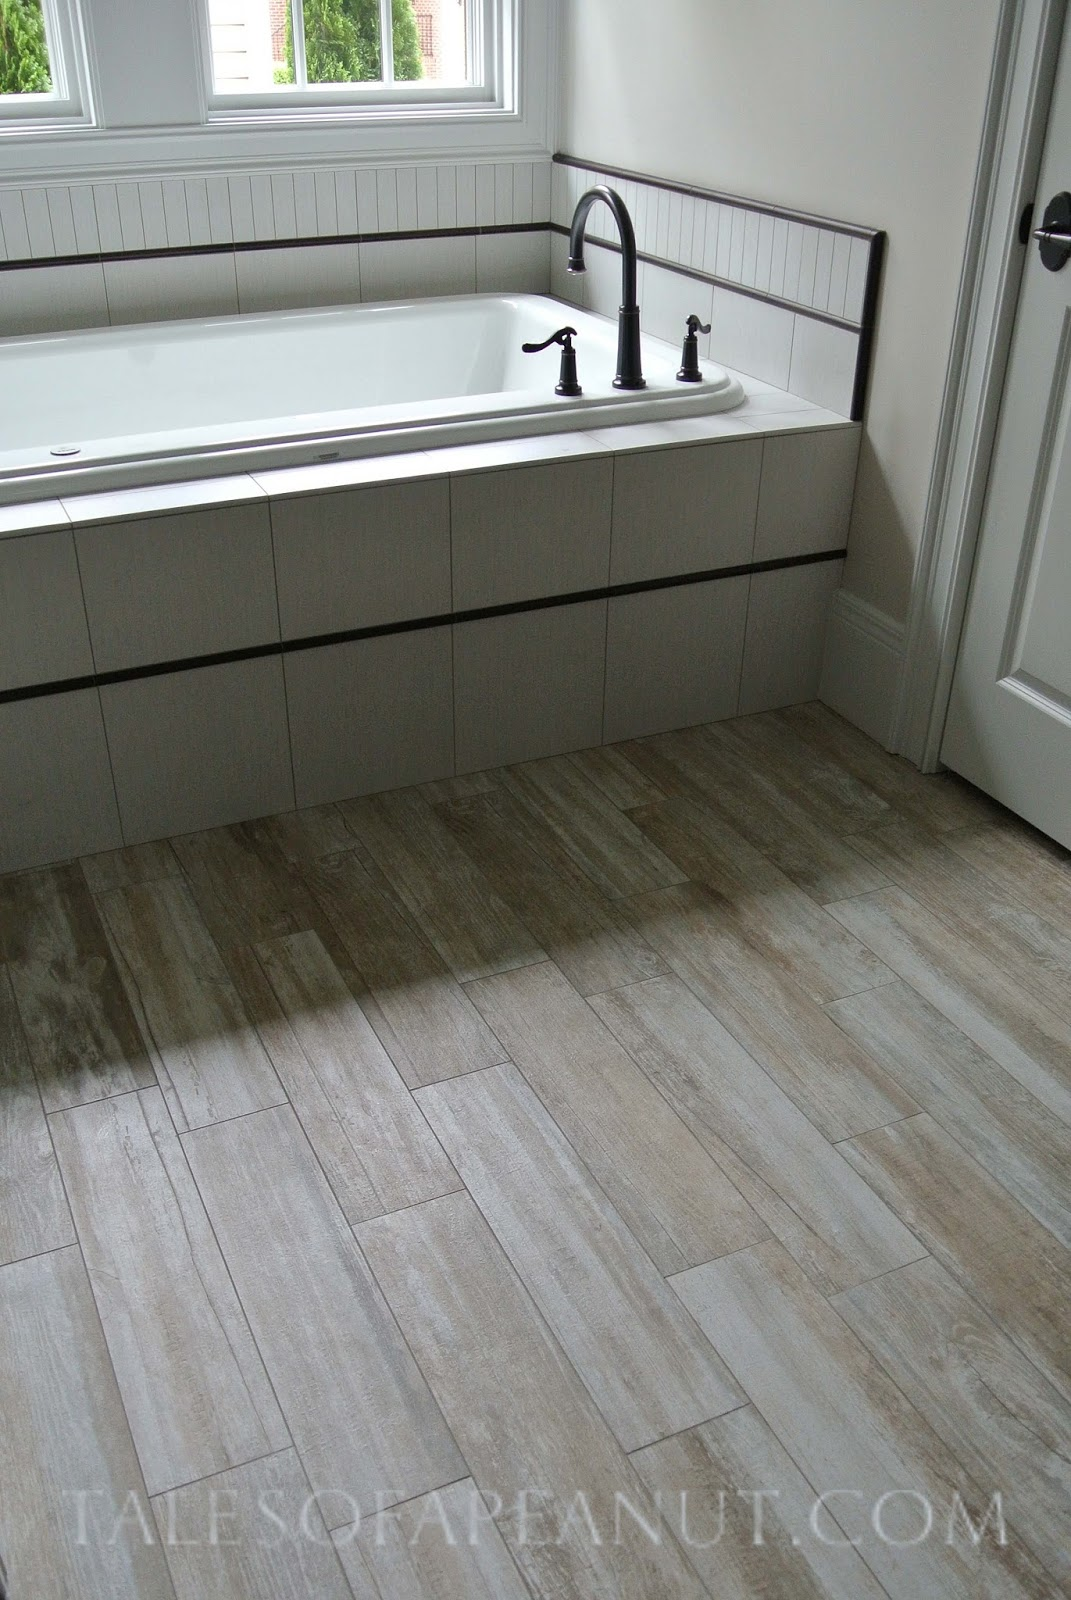 Wonderful 21 Woodgrain Tile Used In Bathroom Remodel By Elizabeth And Co